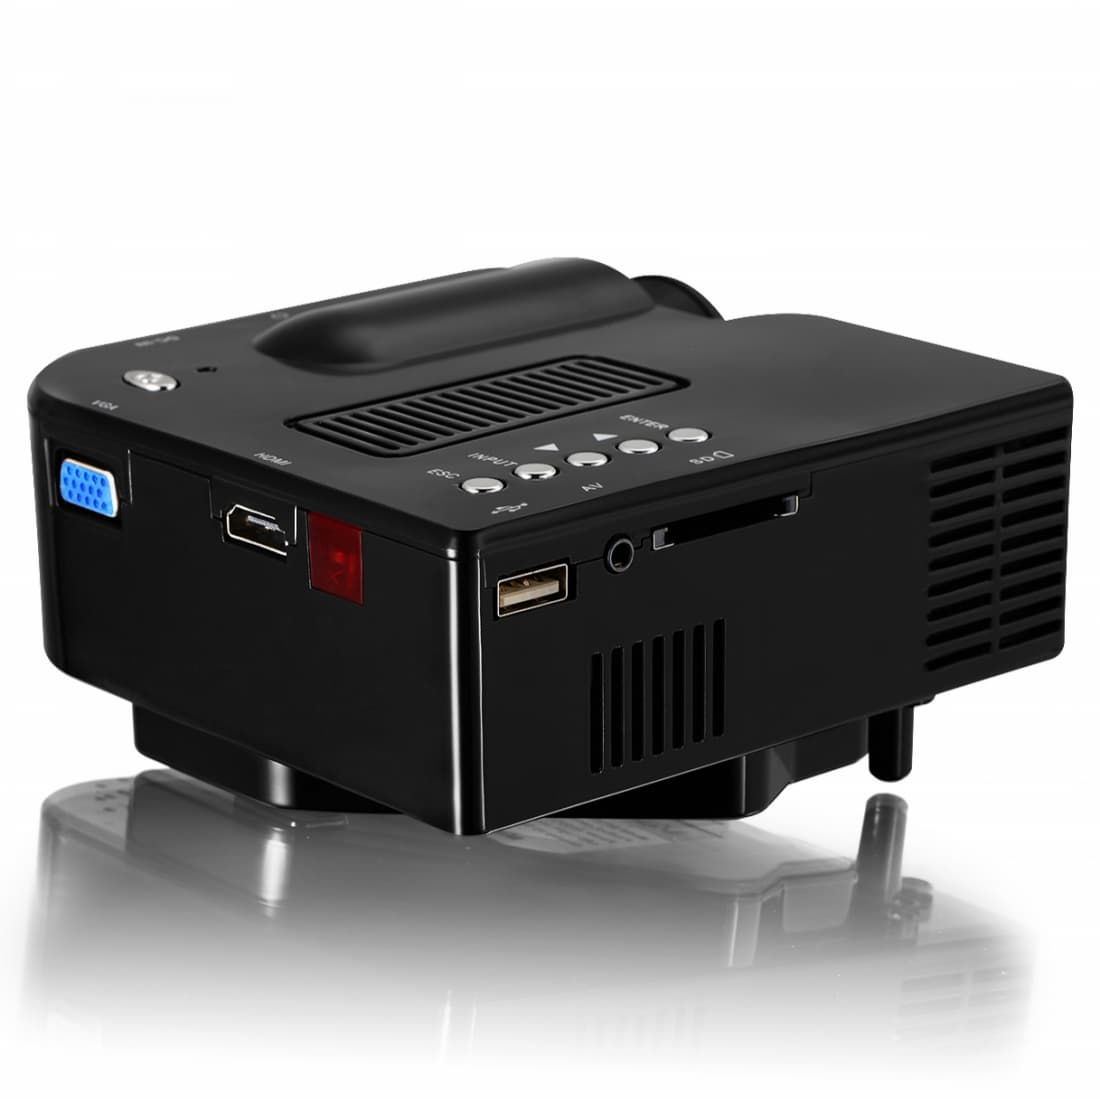 Vivibright gp5s mini led portable projector from for Micro mini projector